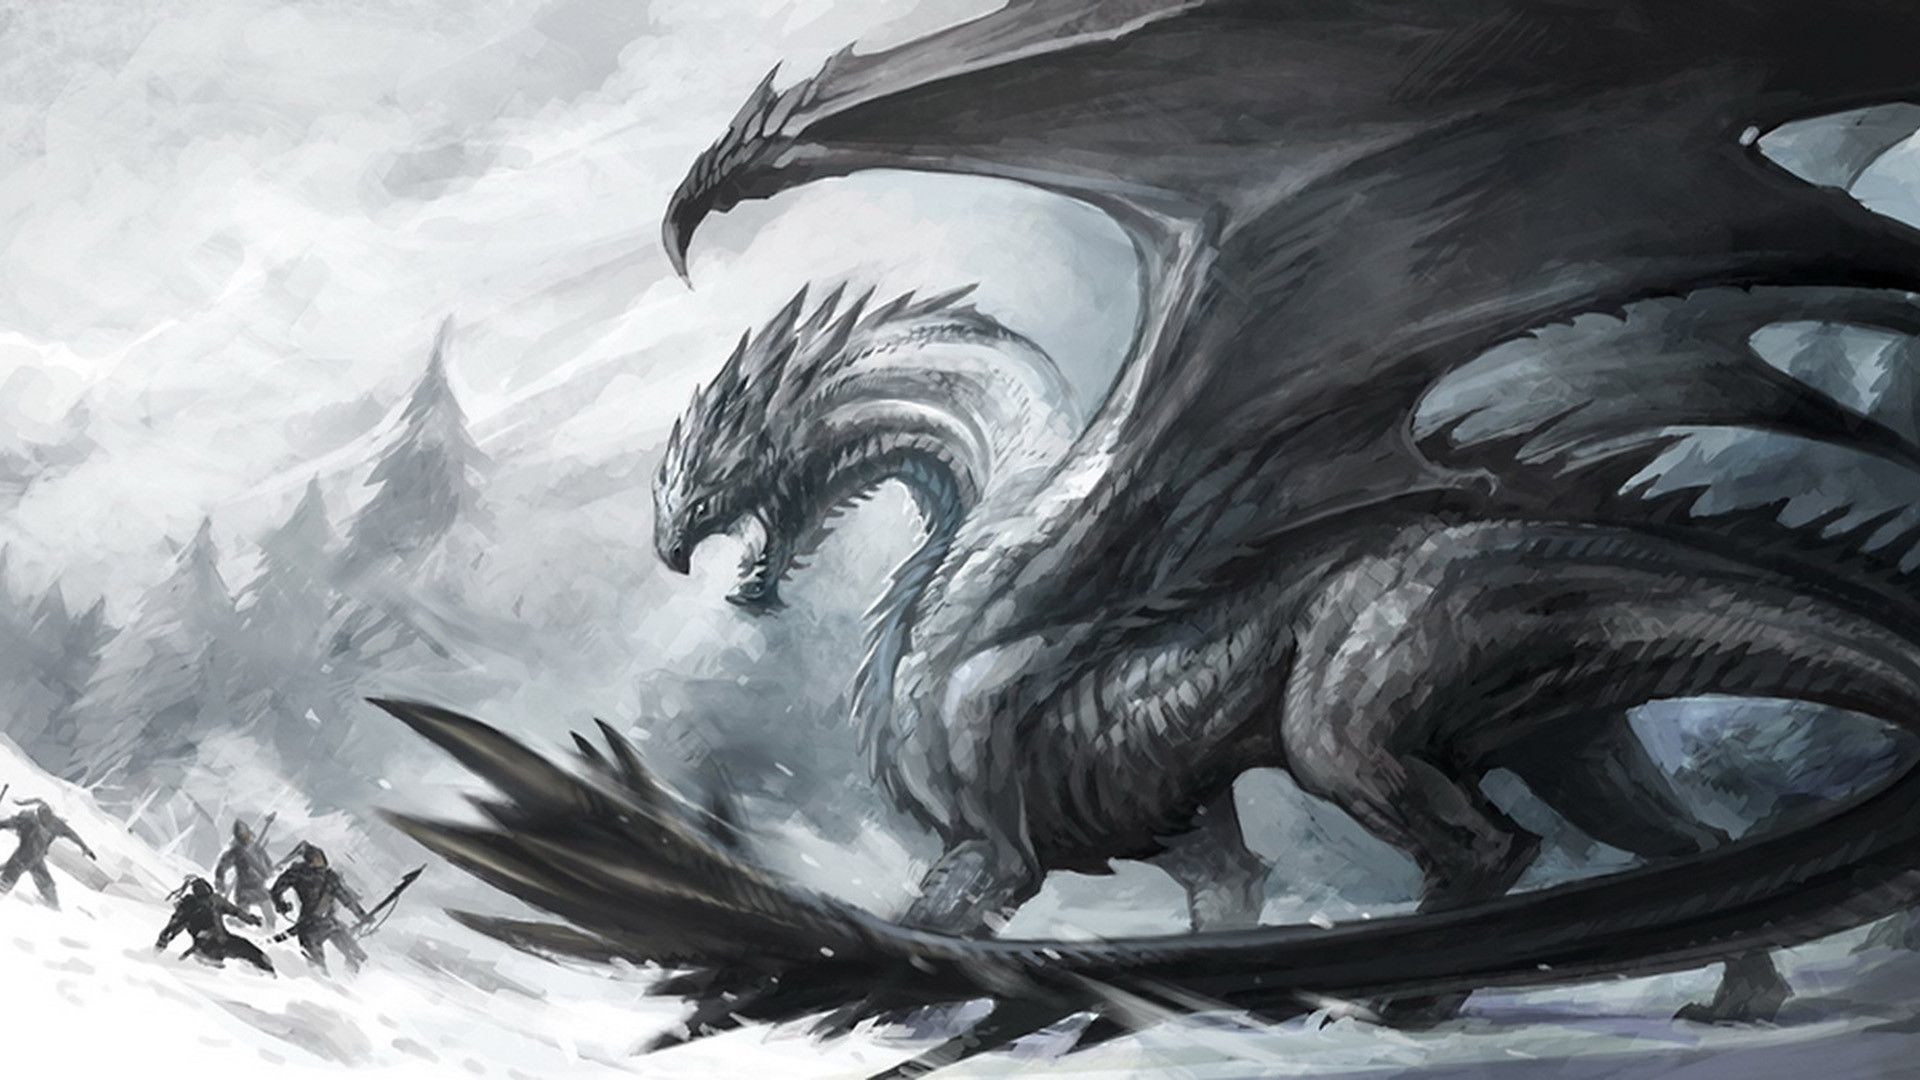 Dragon wallpapers for desktop 61 images - Dragon backgrounds 1920x1080 ...